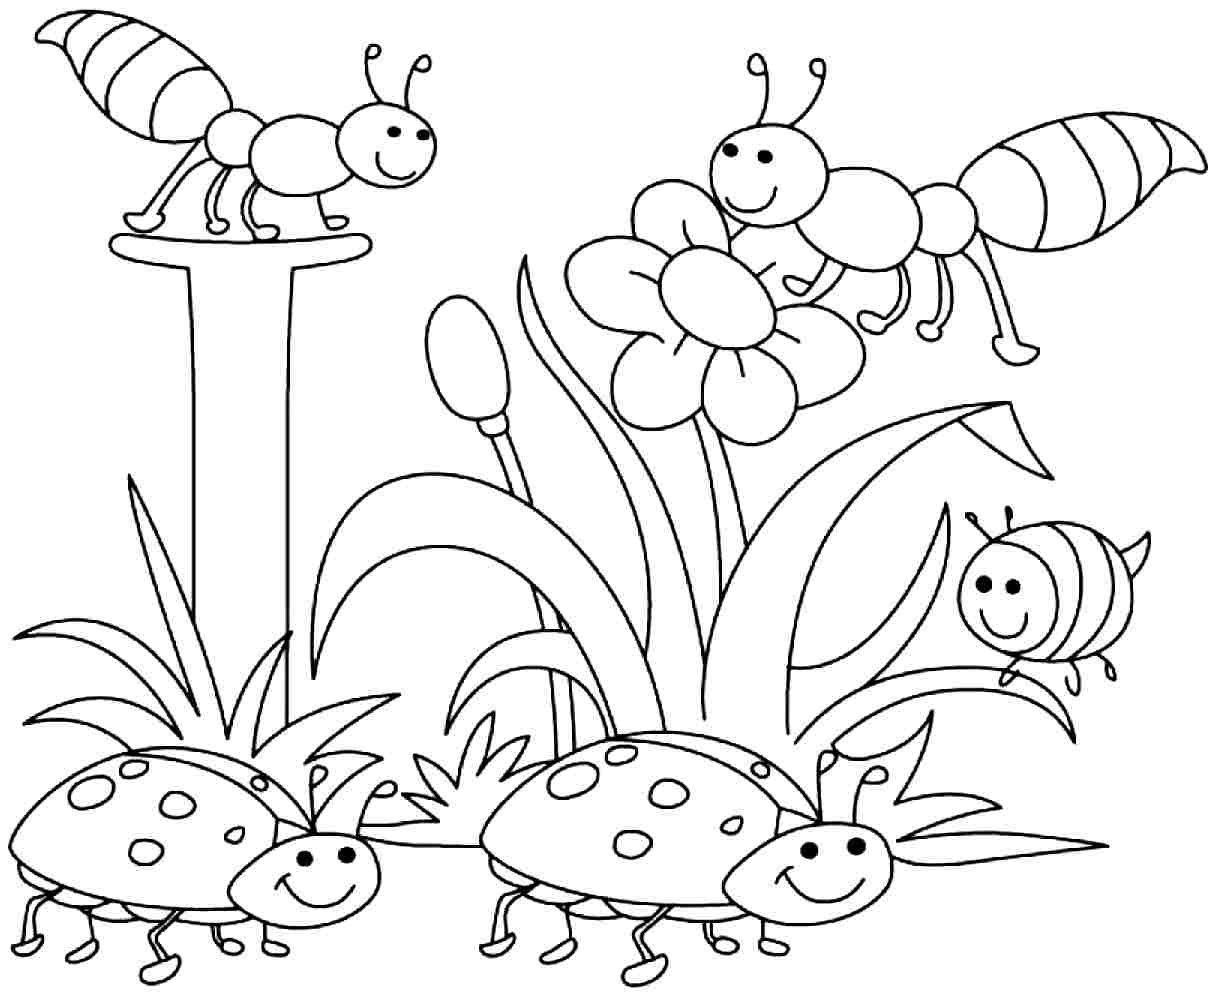 coloring bug a bug39s life coloring pages download and print a bug39s coloring bug